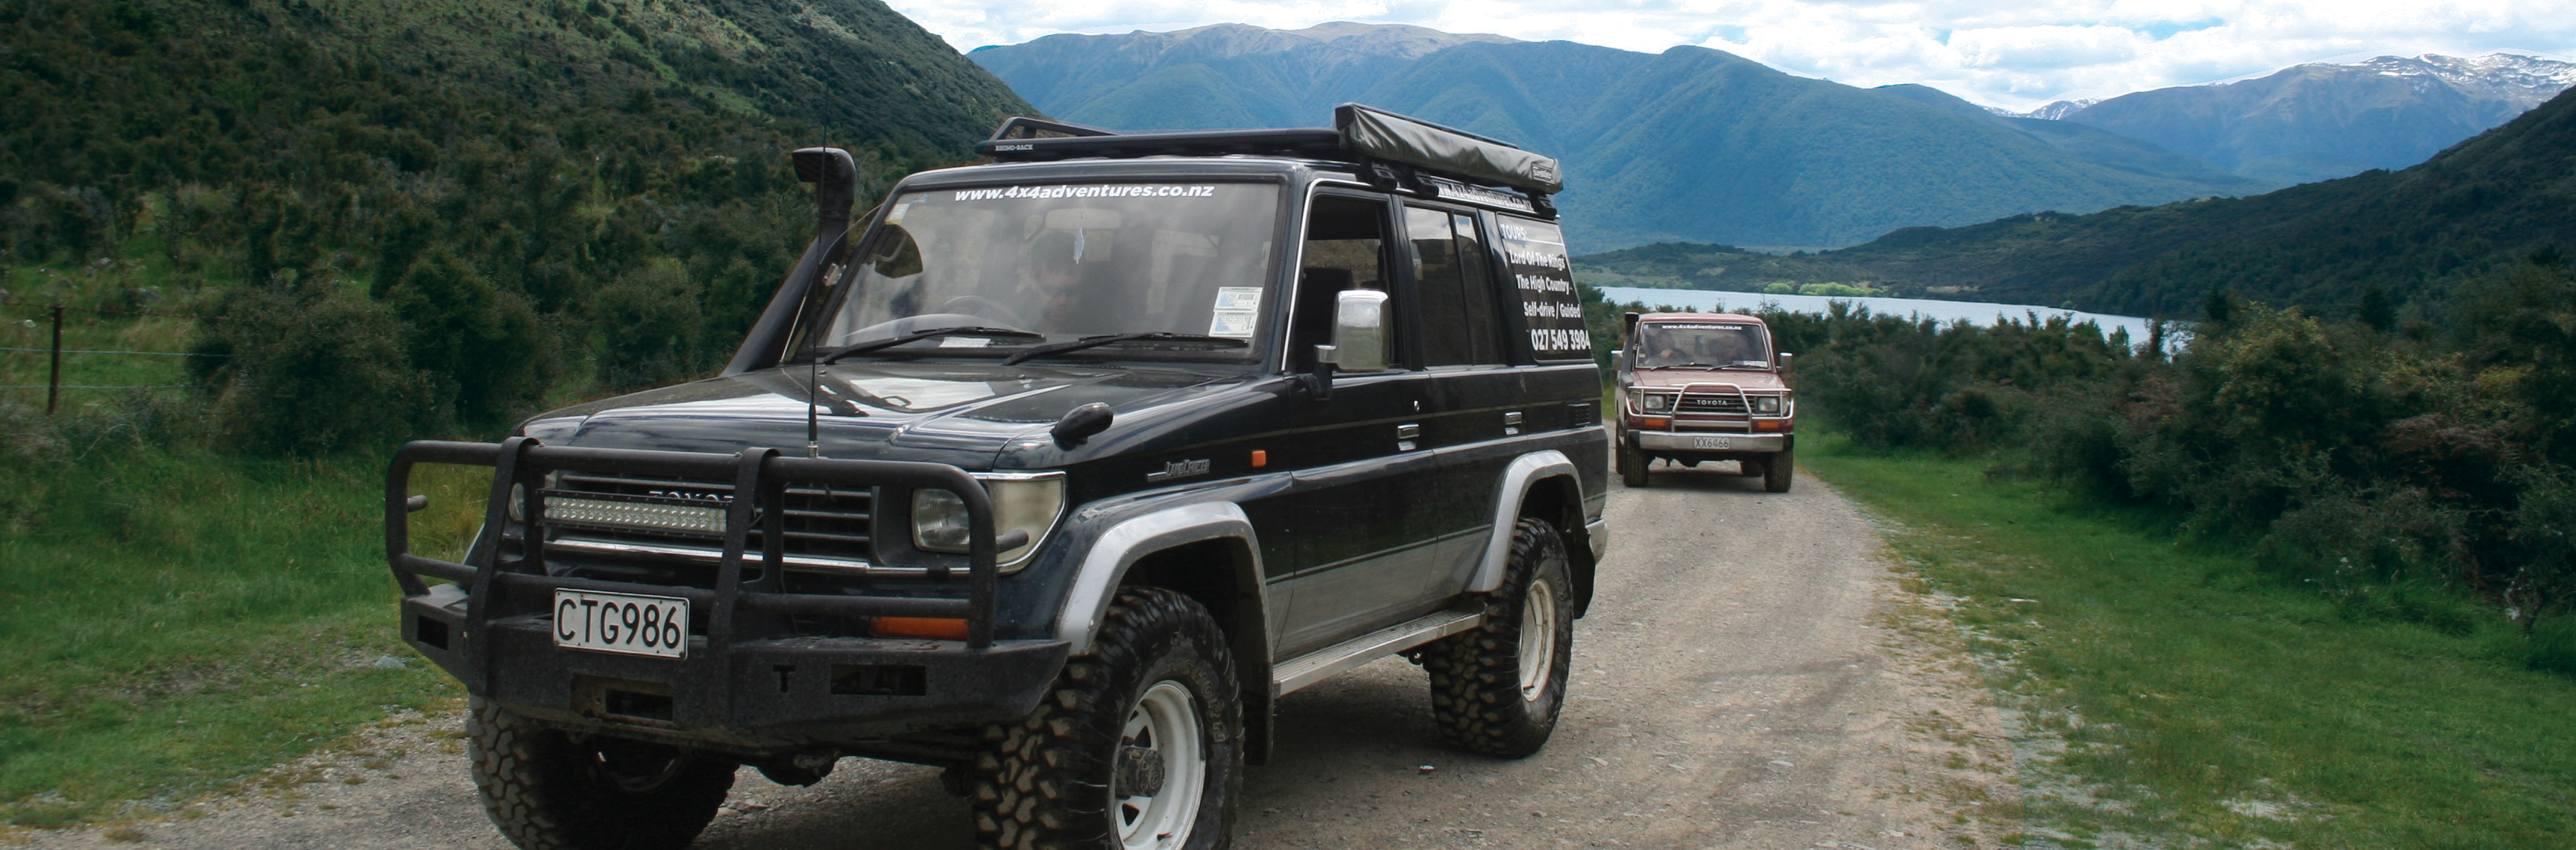 Four-Wheel-Drive-Tours_home003